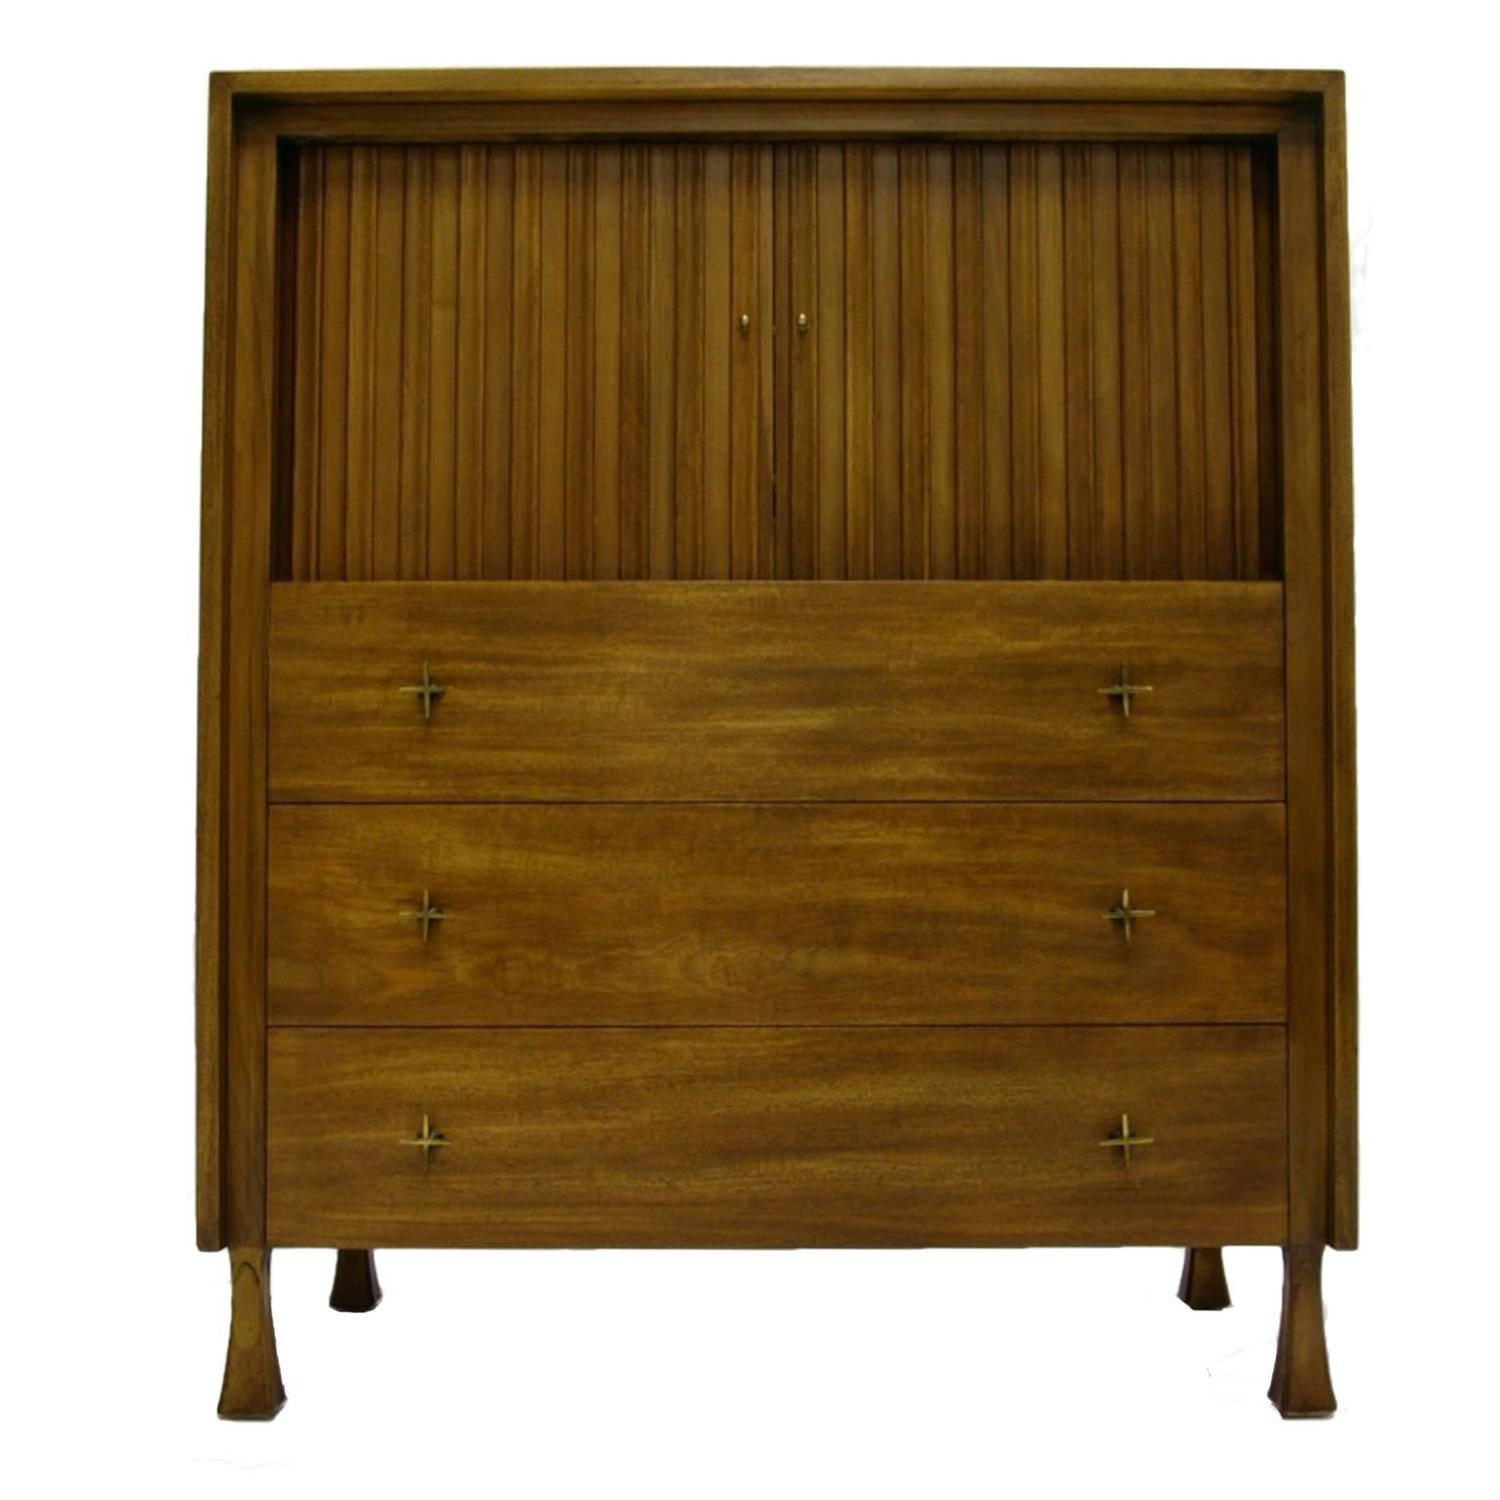 Excellent tall mahogany john widdicomb gentleman 39 s chest with tambour doors for sale at 1stdibs - Excellent furniture ...